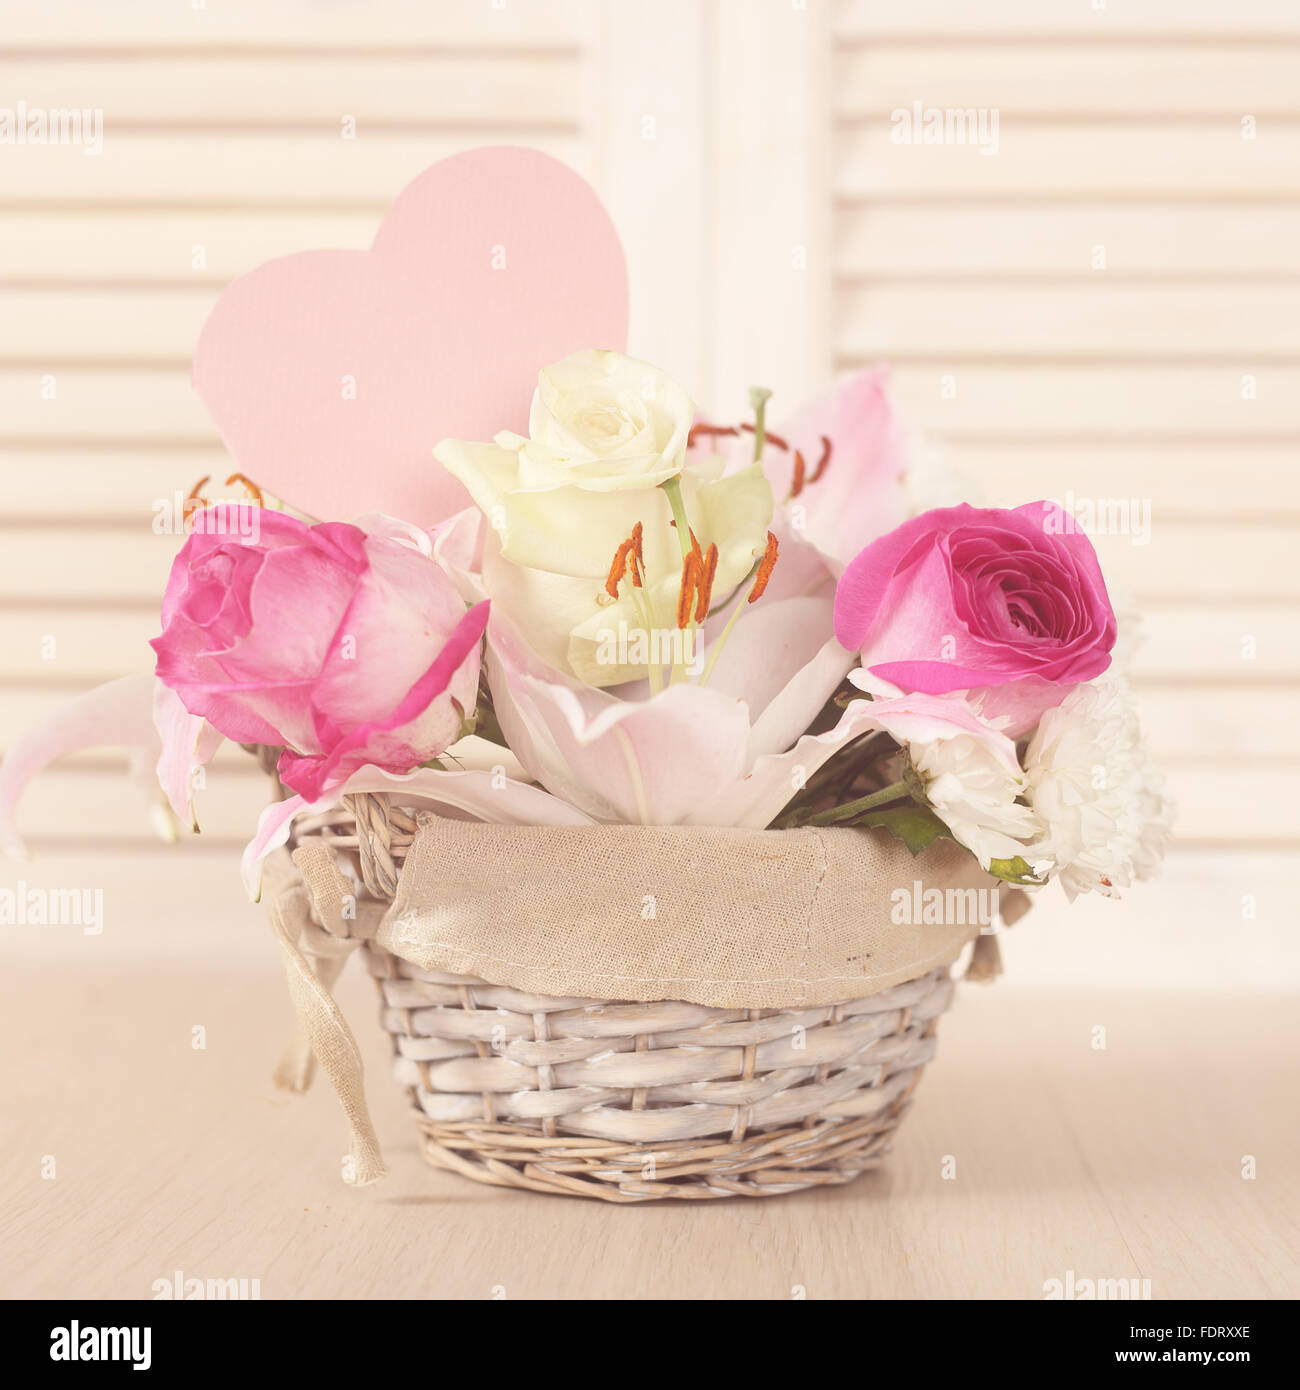 Beautiful flower composition in basket valentines day gift stock beautiful flower composition in basket valentines day gift izmirmasajfo Images